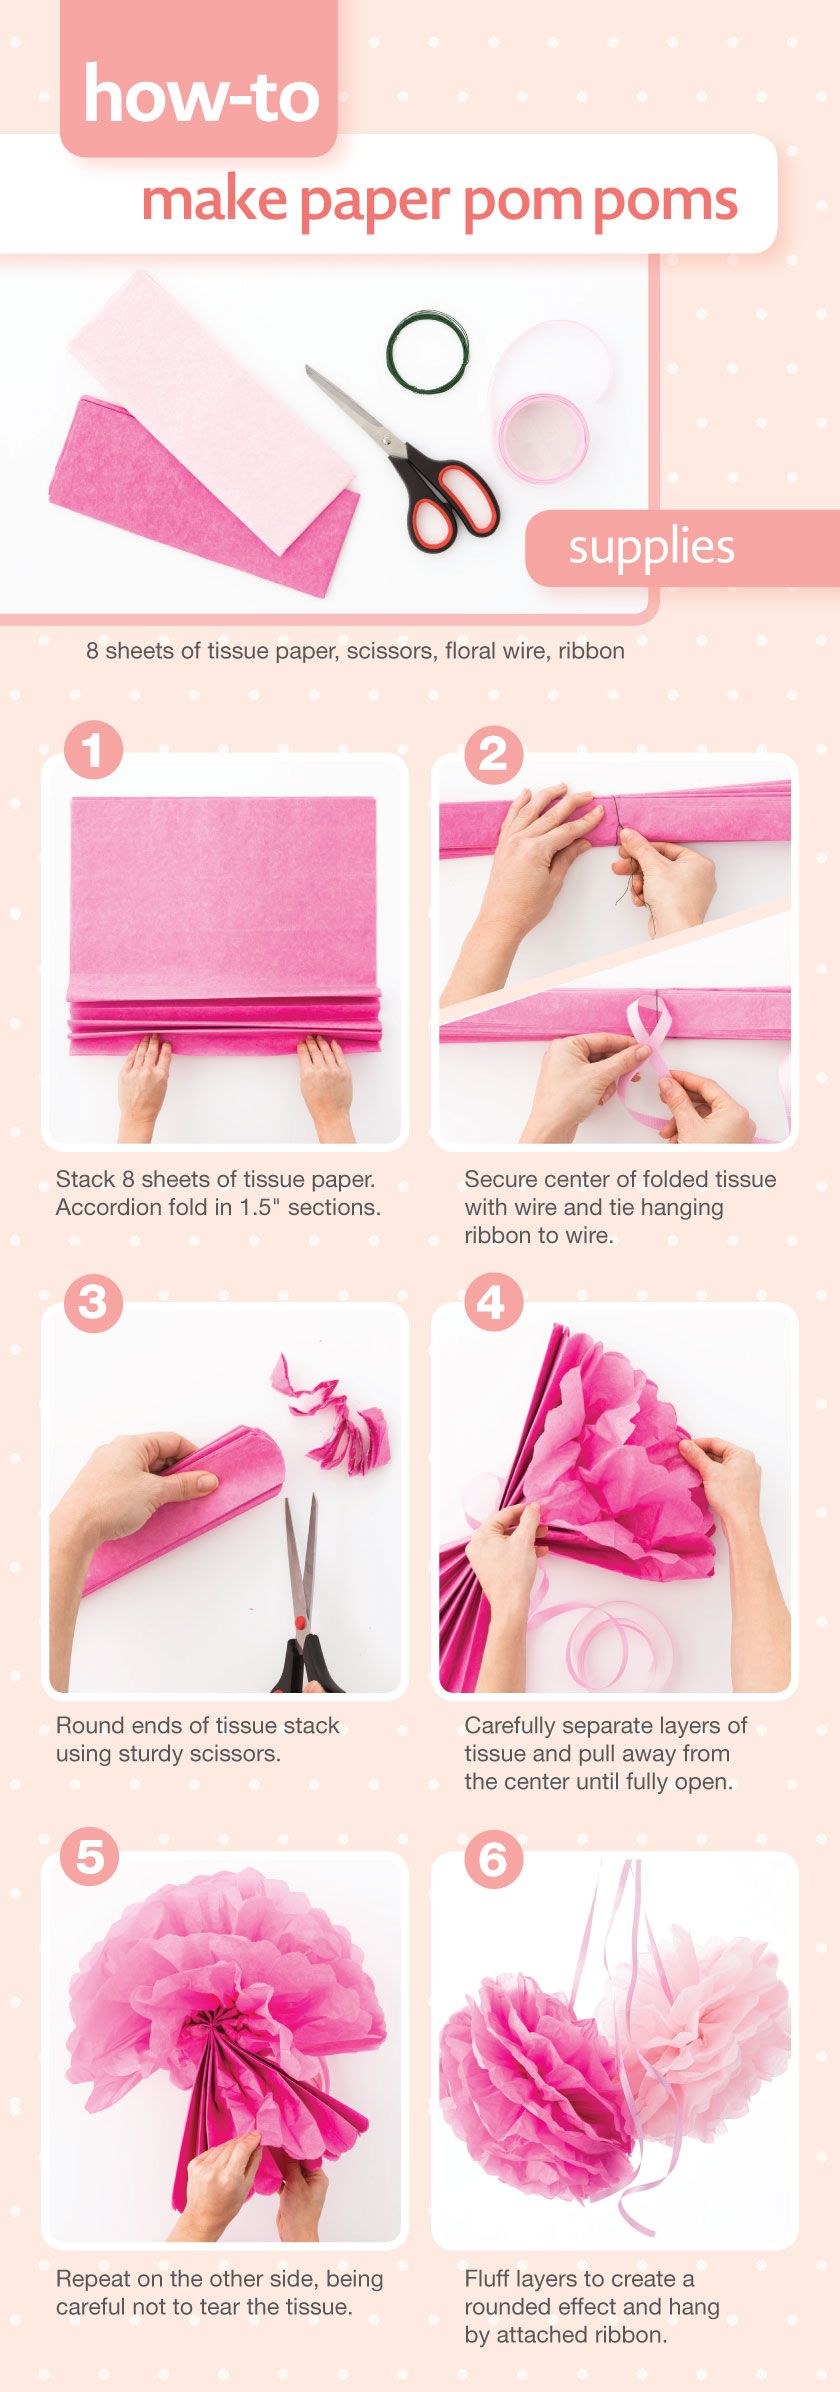 How to make paper pom poms using tissue paper diy decor diy how to make paper pom poms using tissue paper diy decor mightylinksfo